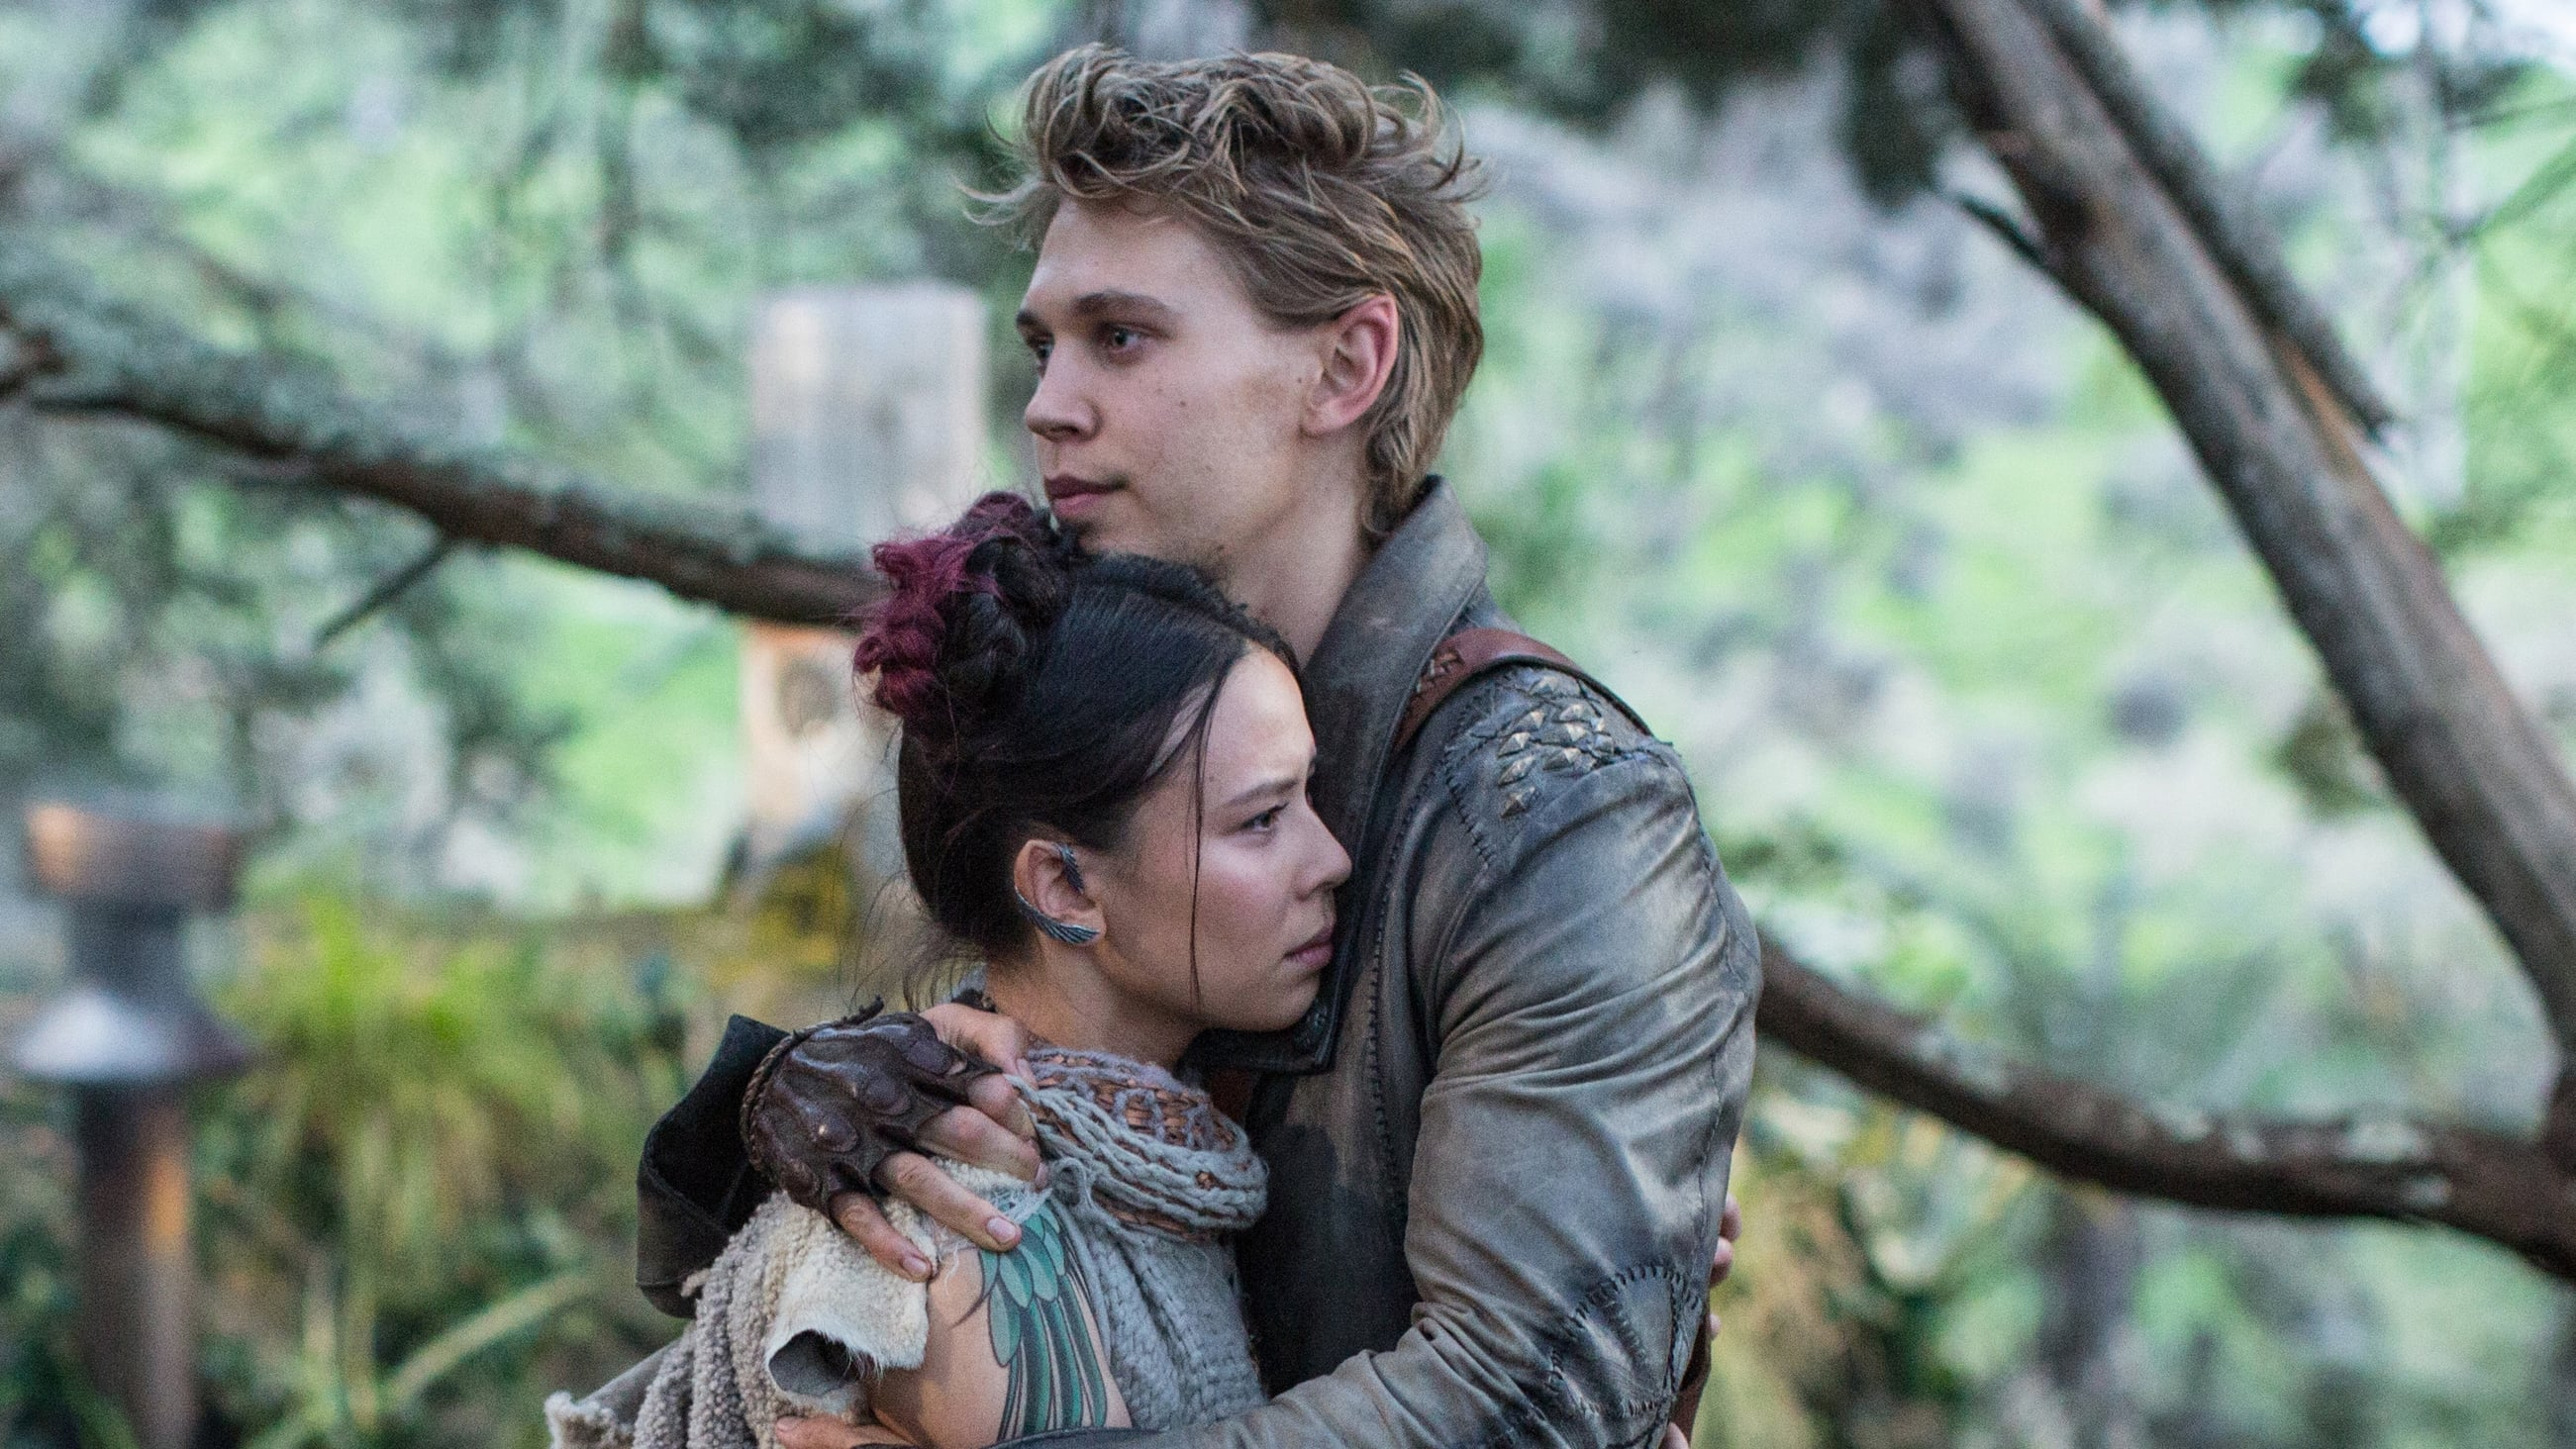 shannara chronicles season 2 episode 7 123movies